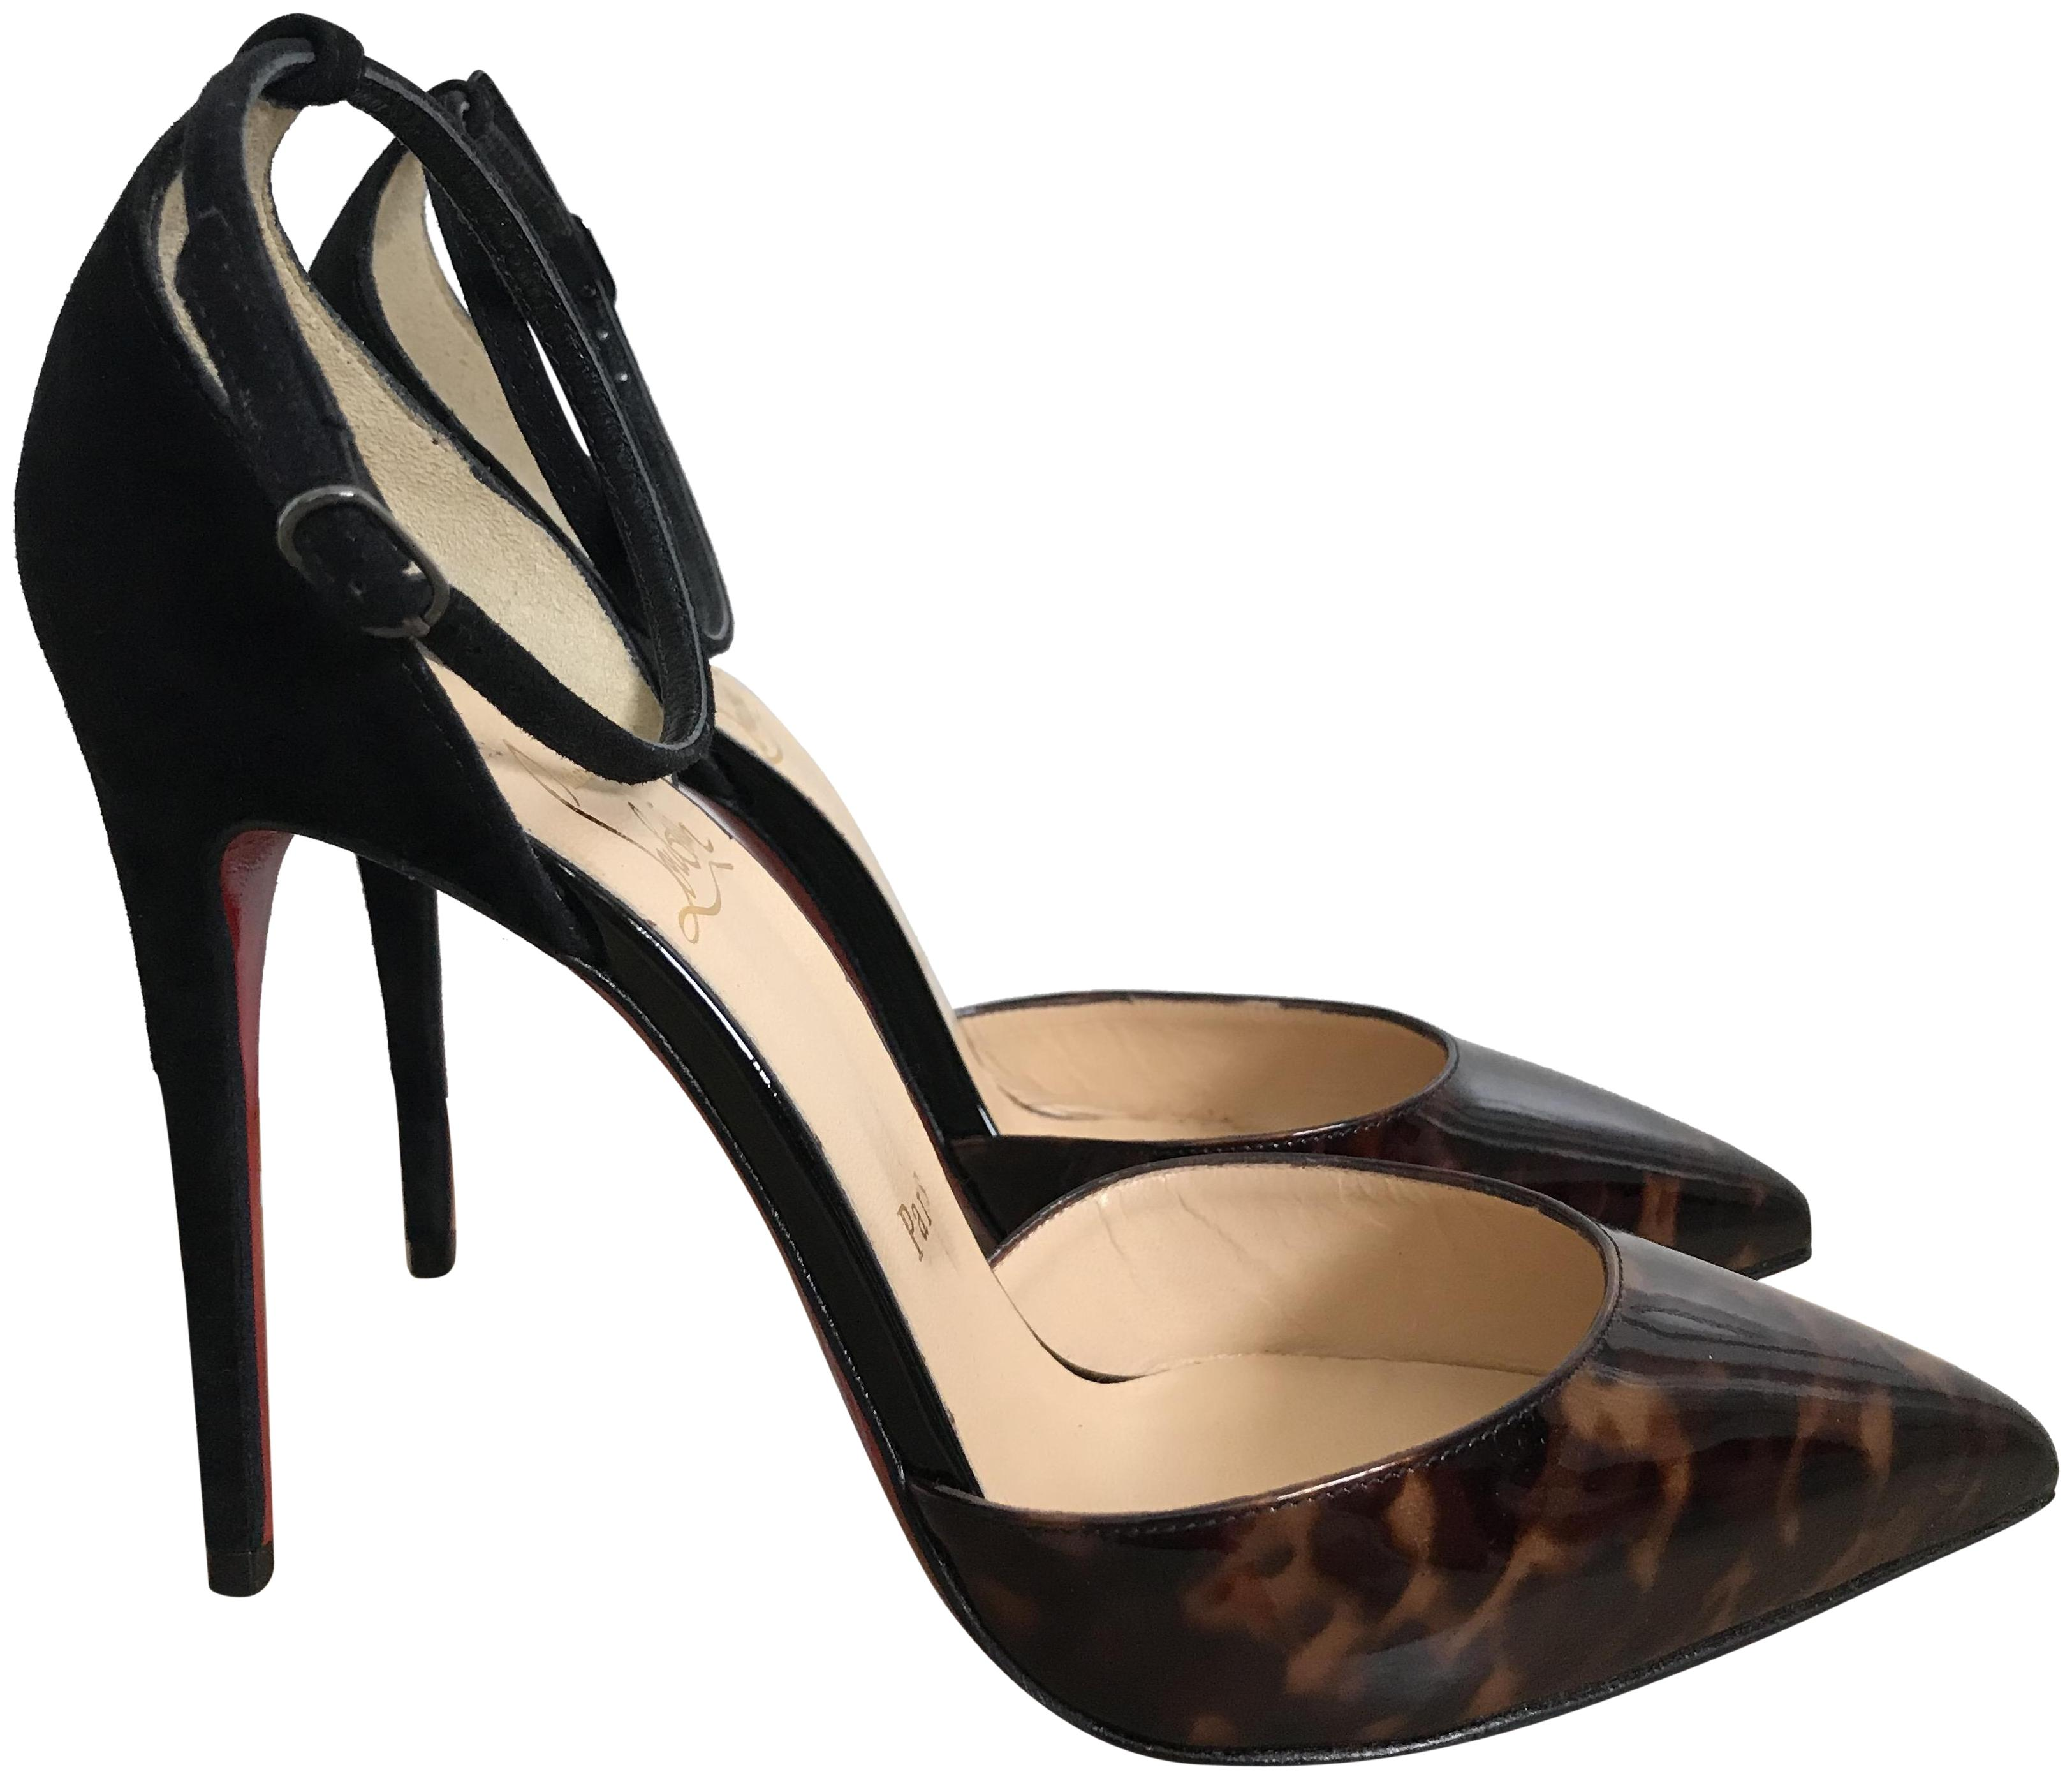 Christian Louboutin Brown Tortoise Black Patent Suede Pointed Pumps Size EU 37.5 (Approx. US 7.5) Regular (M, B)